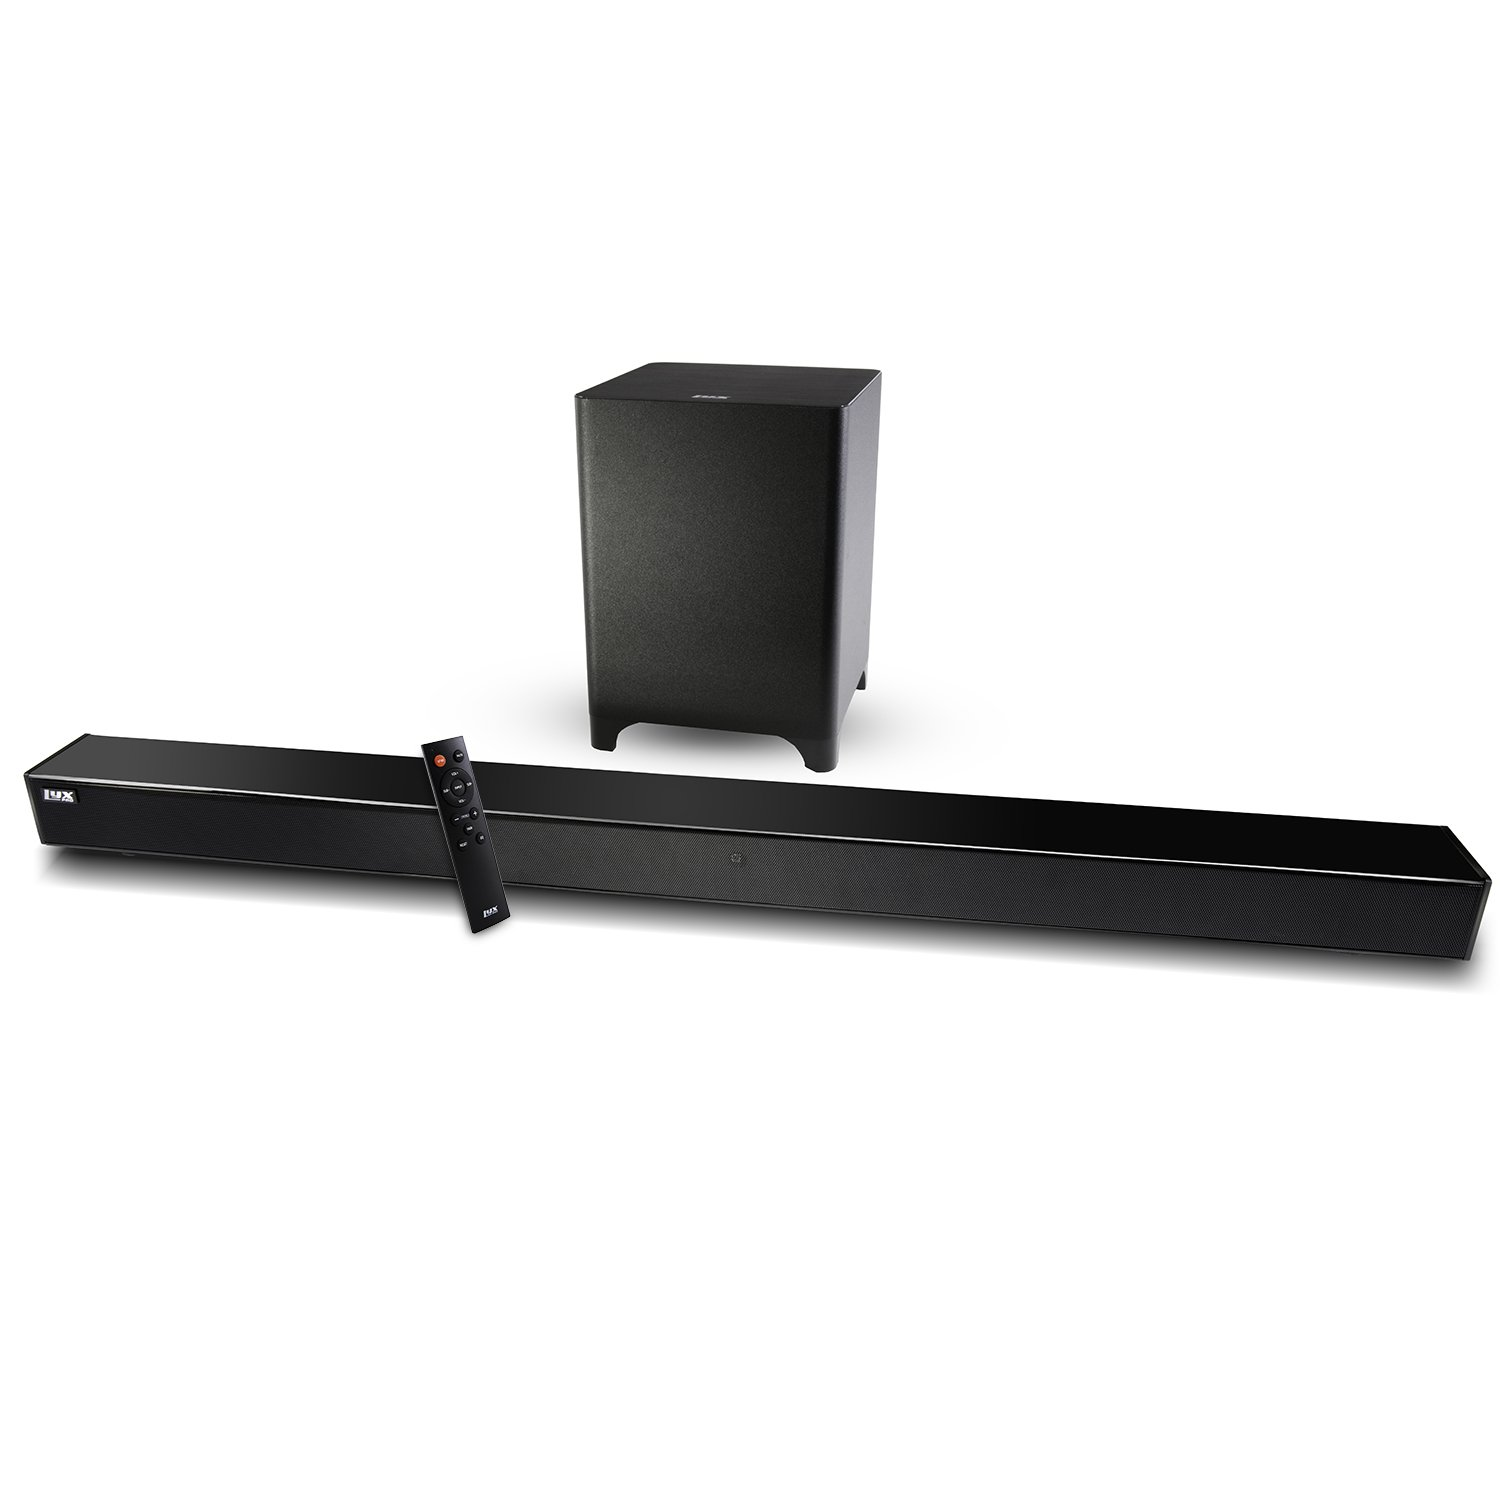 LyxPro Sound Bar System Bluetooth Soundbar Speaker Plus Wireless Subwoofer for TV, Home Theater, PC, Cellphone, Tablet & More, Includes Remote Control, DC Adapter, Wall Mount Kit & 3.5mm Cable by LyxPro